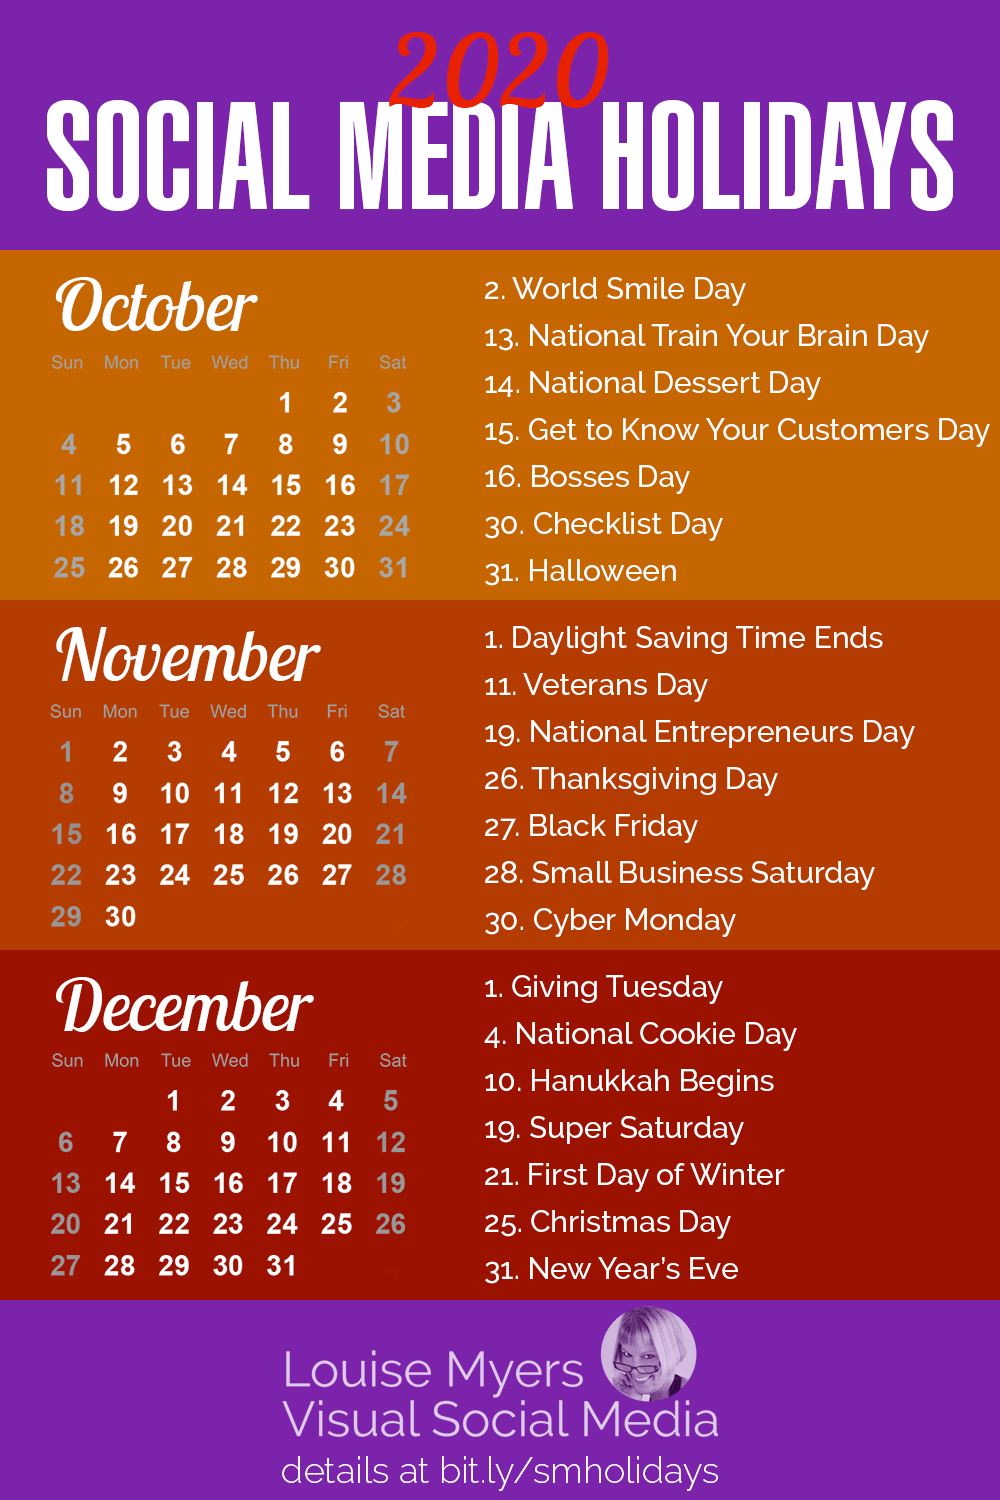 84 Social Media Holidays You Need In 2020: Indispensable! In Find Me An Everyday Is A Holiday Calendar